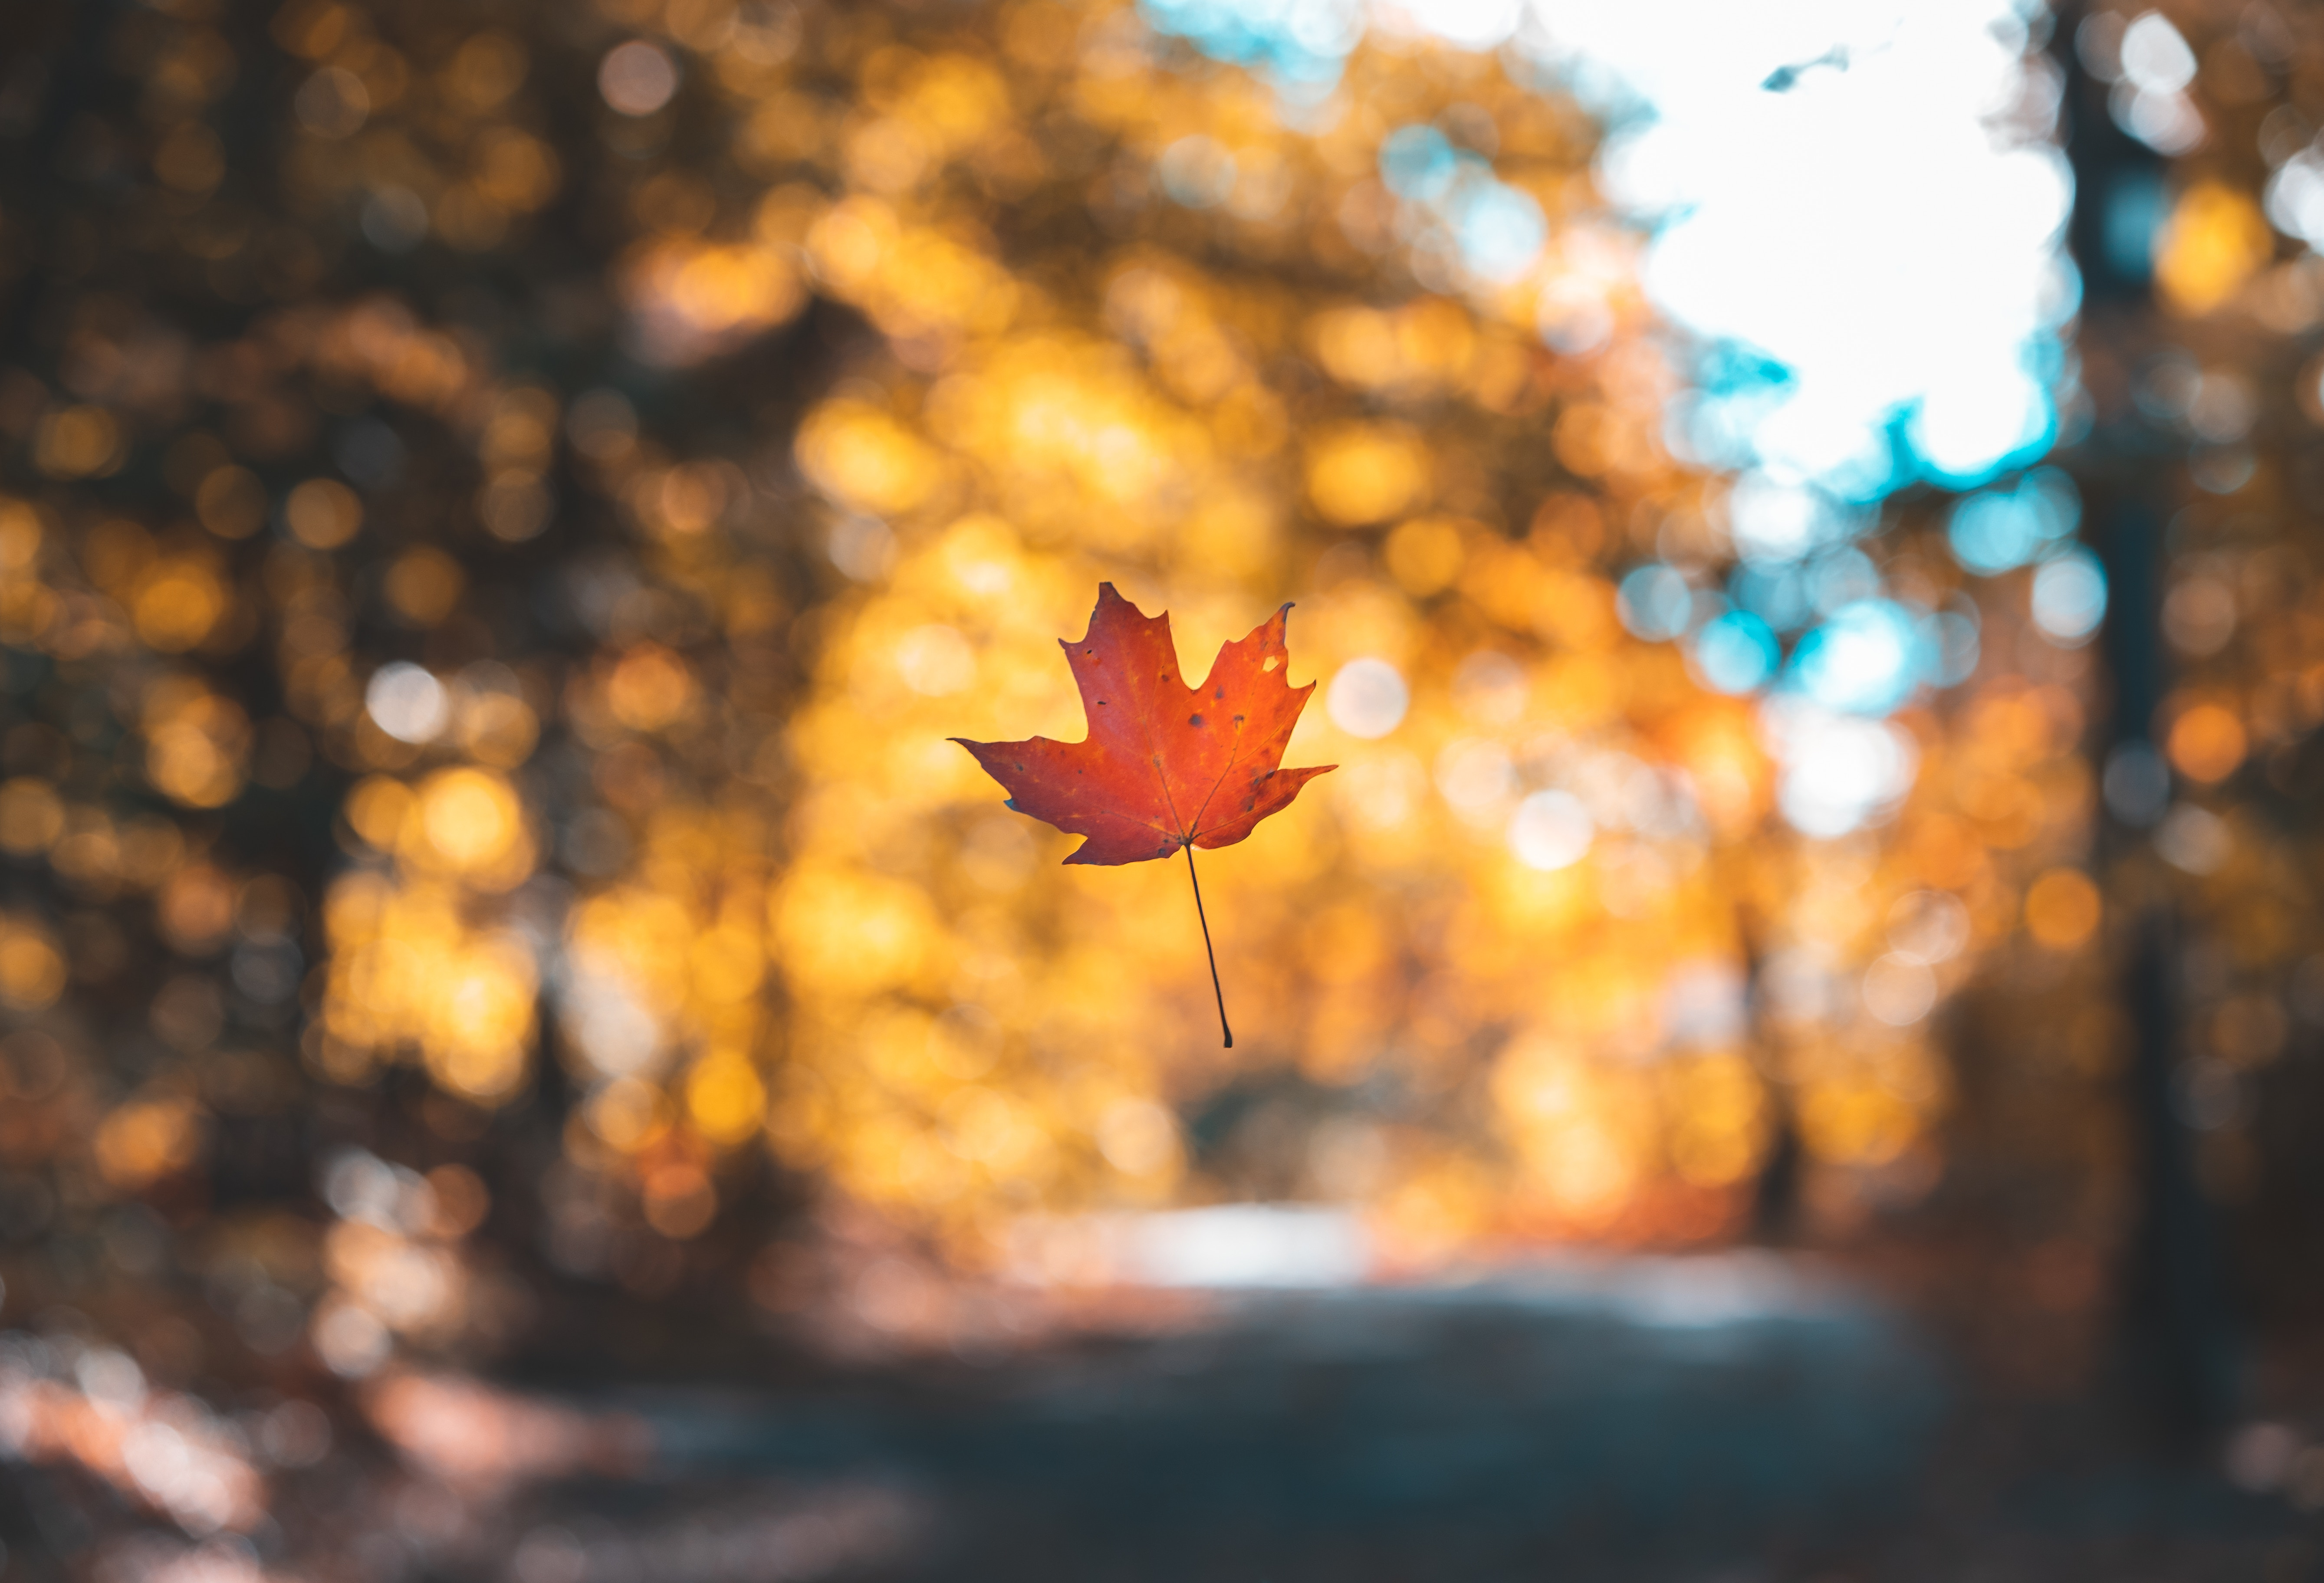 116840 download wallpaper Nature, Sheet, Leaf, Maple, Autumn, Levitation, Blur, Smooth screensavers and pictures for free